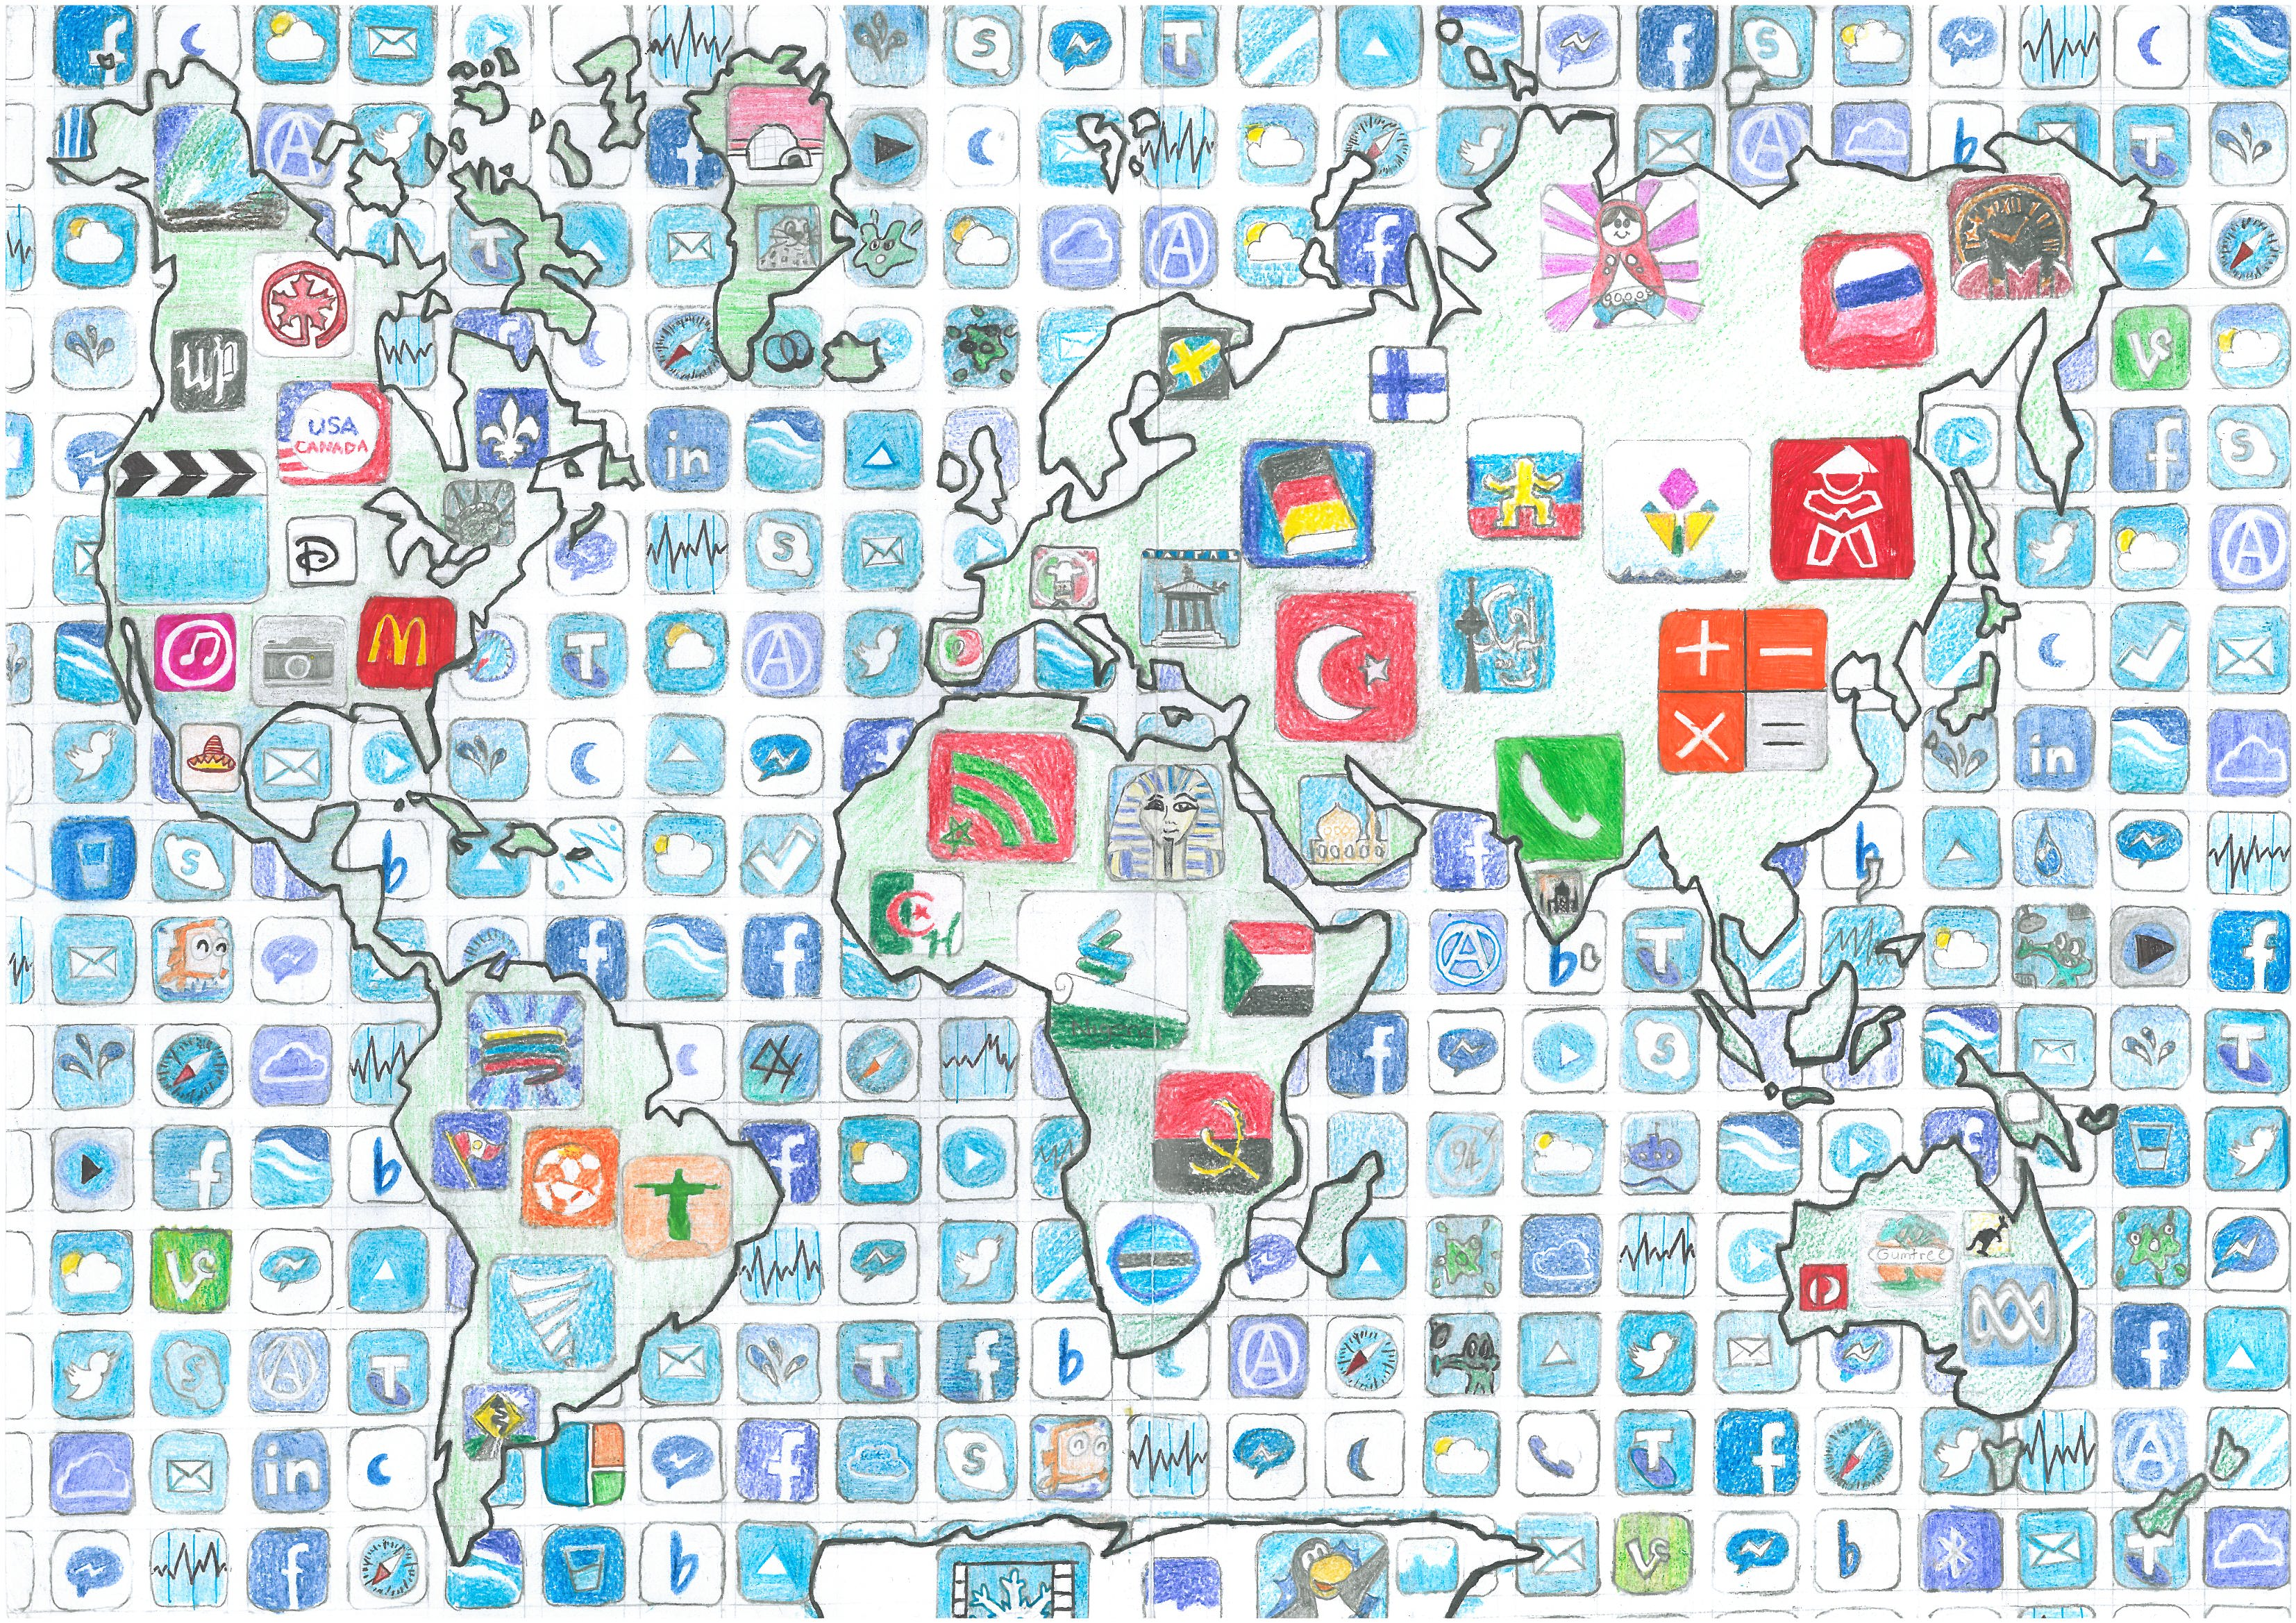 059 - M-apps: Keeping the World Connected Karlie Travassaros - Age 13